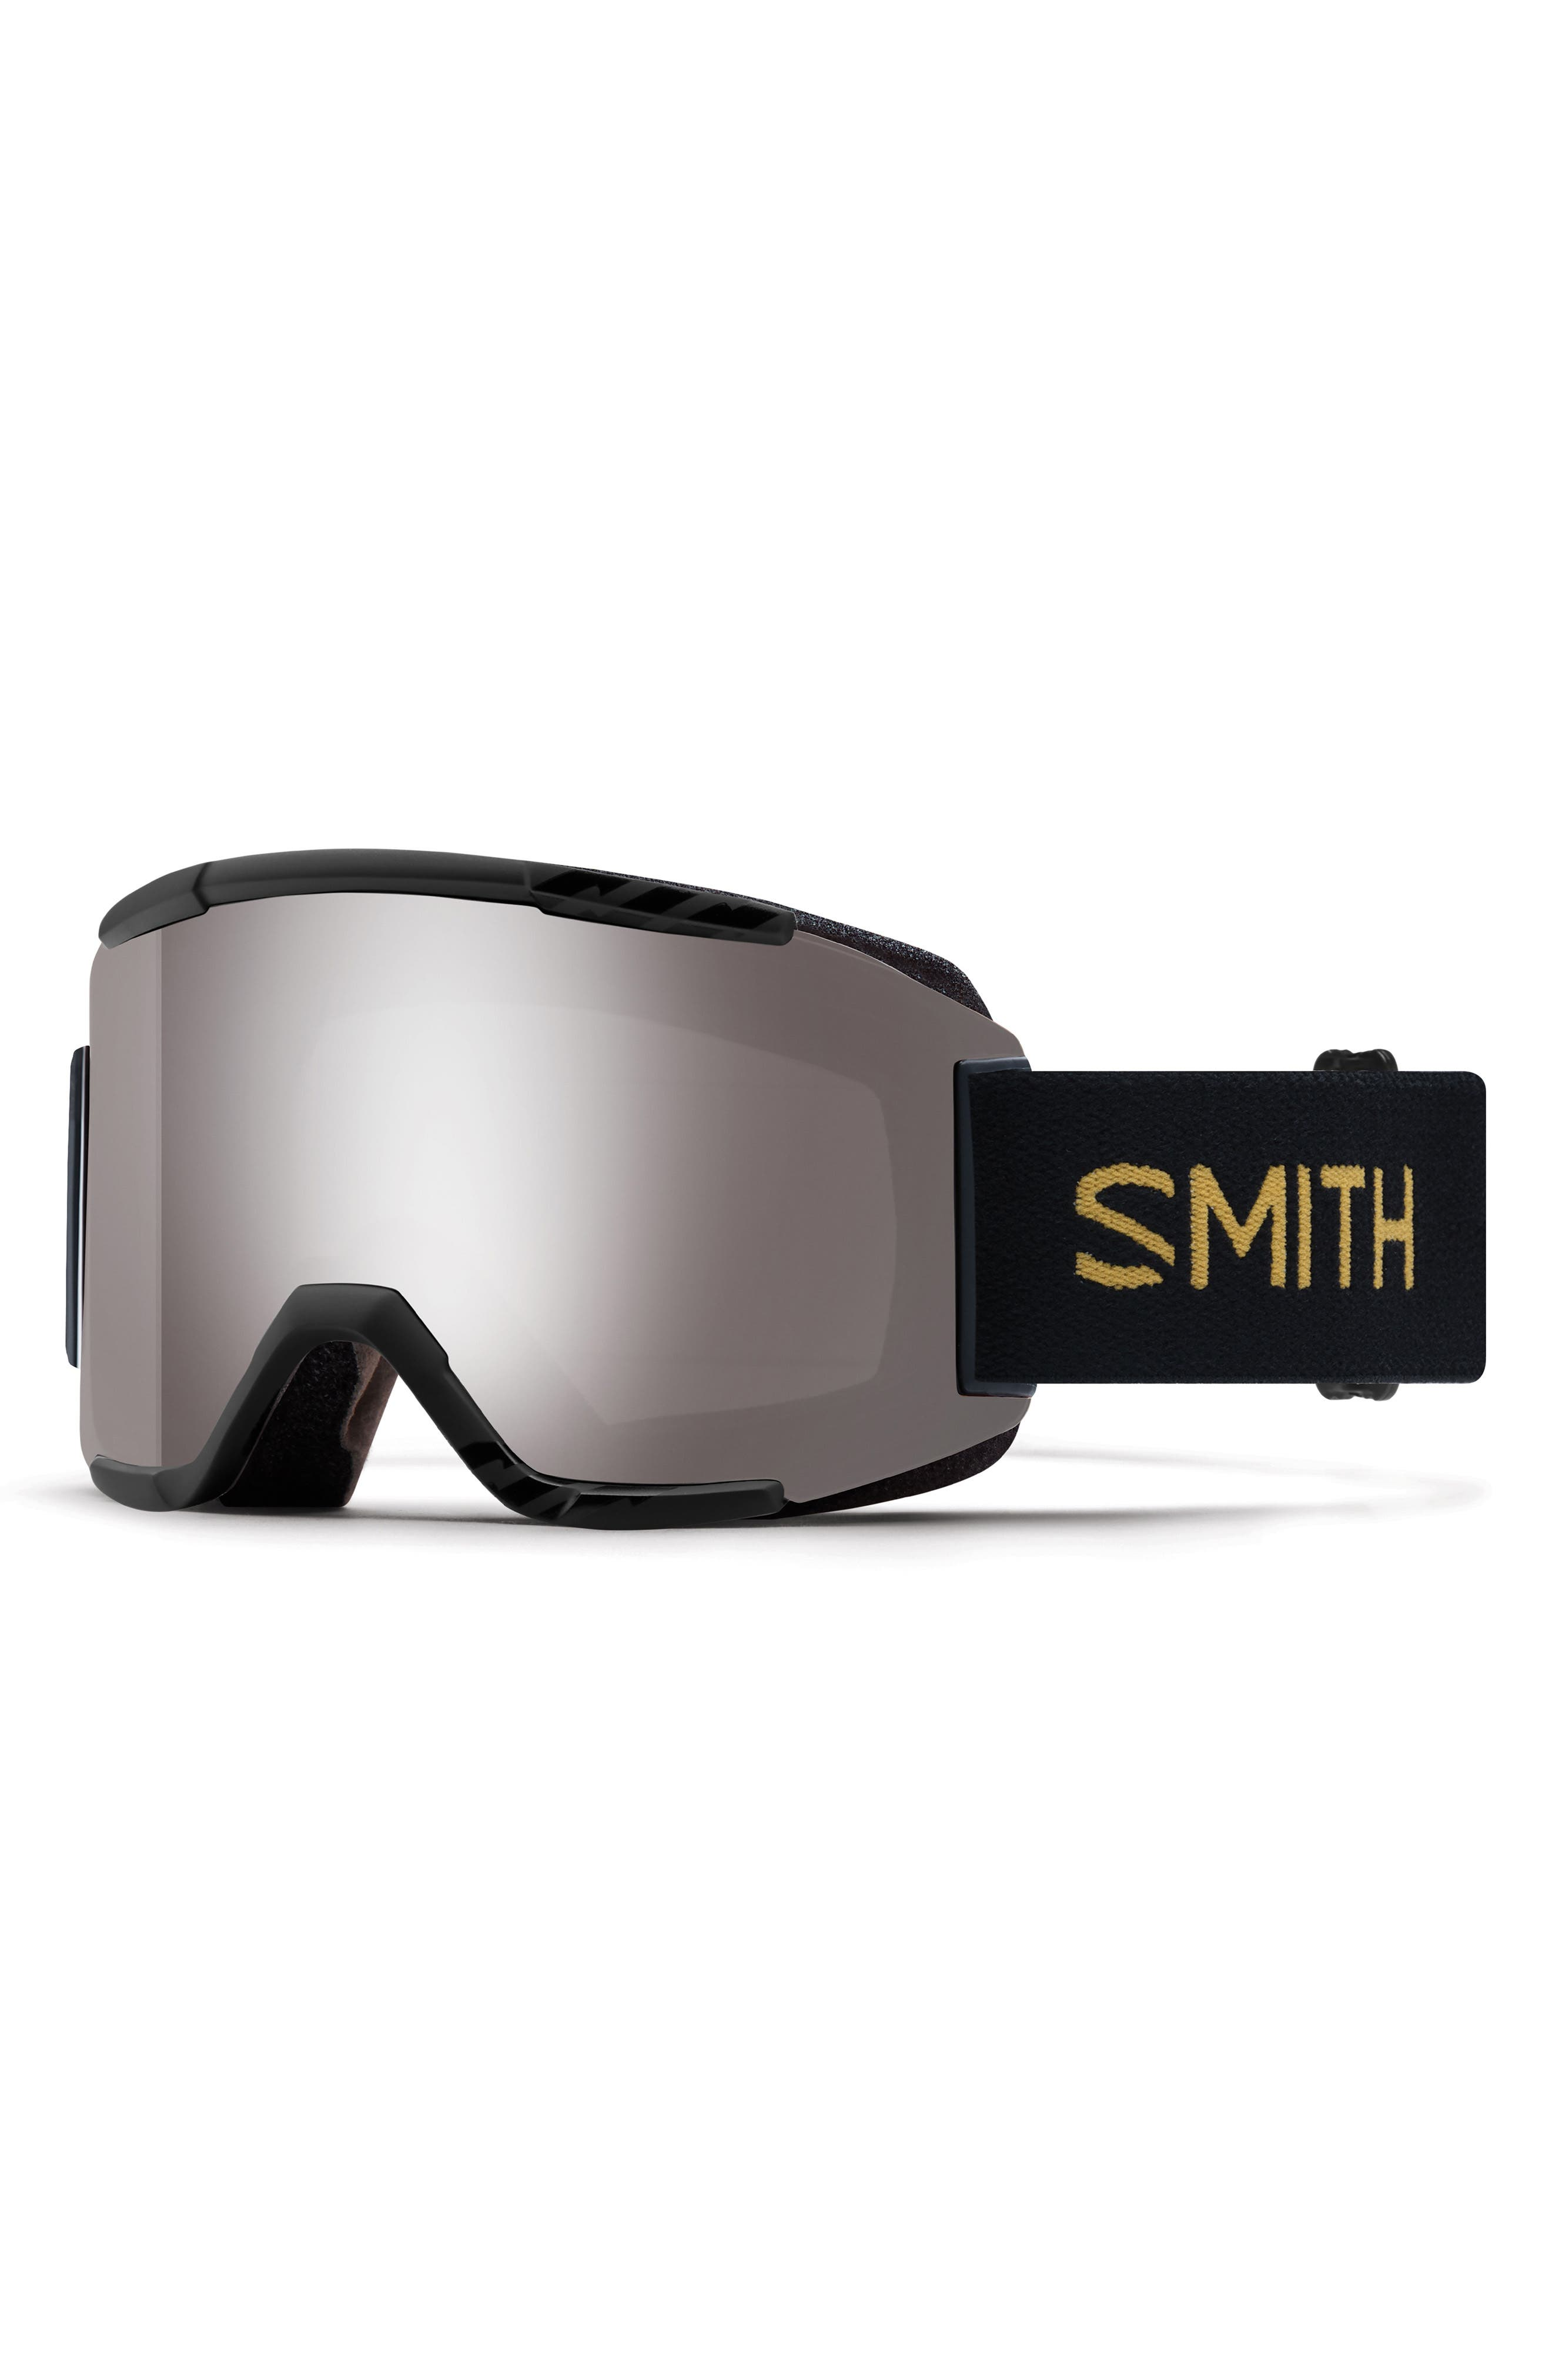 Squad Chromapop 180mm Snow Goggles,                             Main thumbnail 1, color,                             001